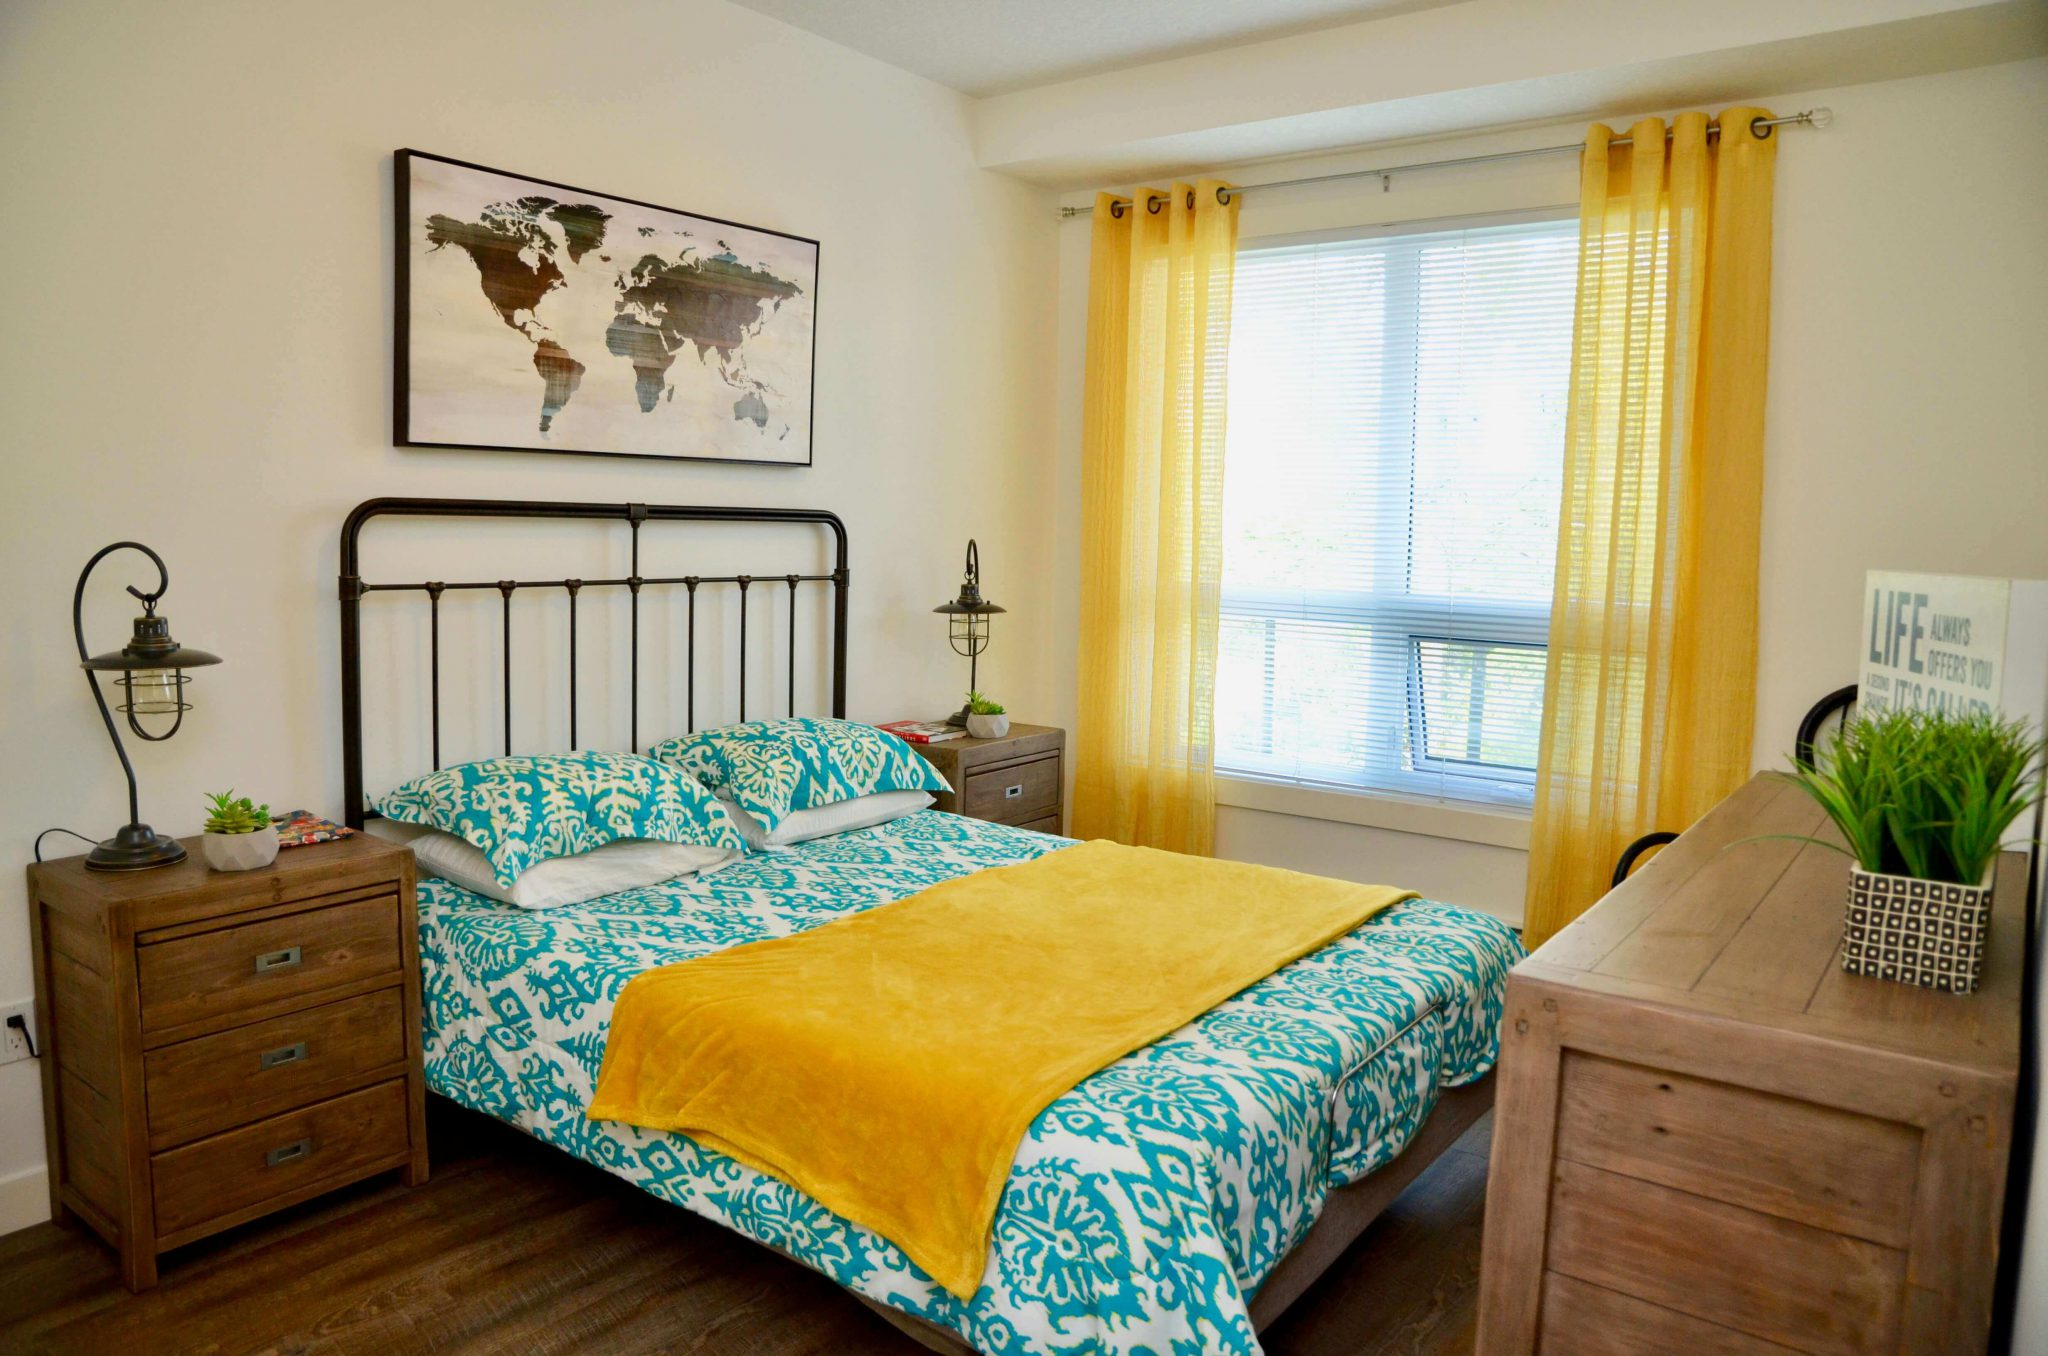 Condo master bedroom with queen bed, dresser and nightstands